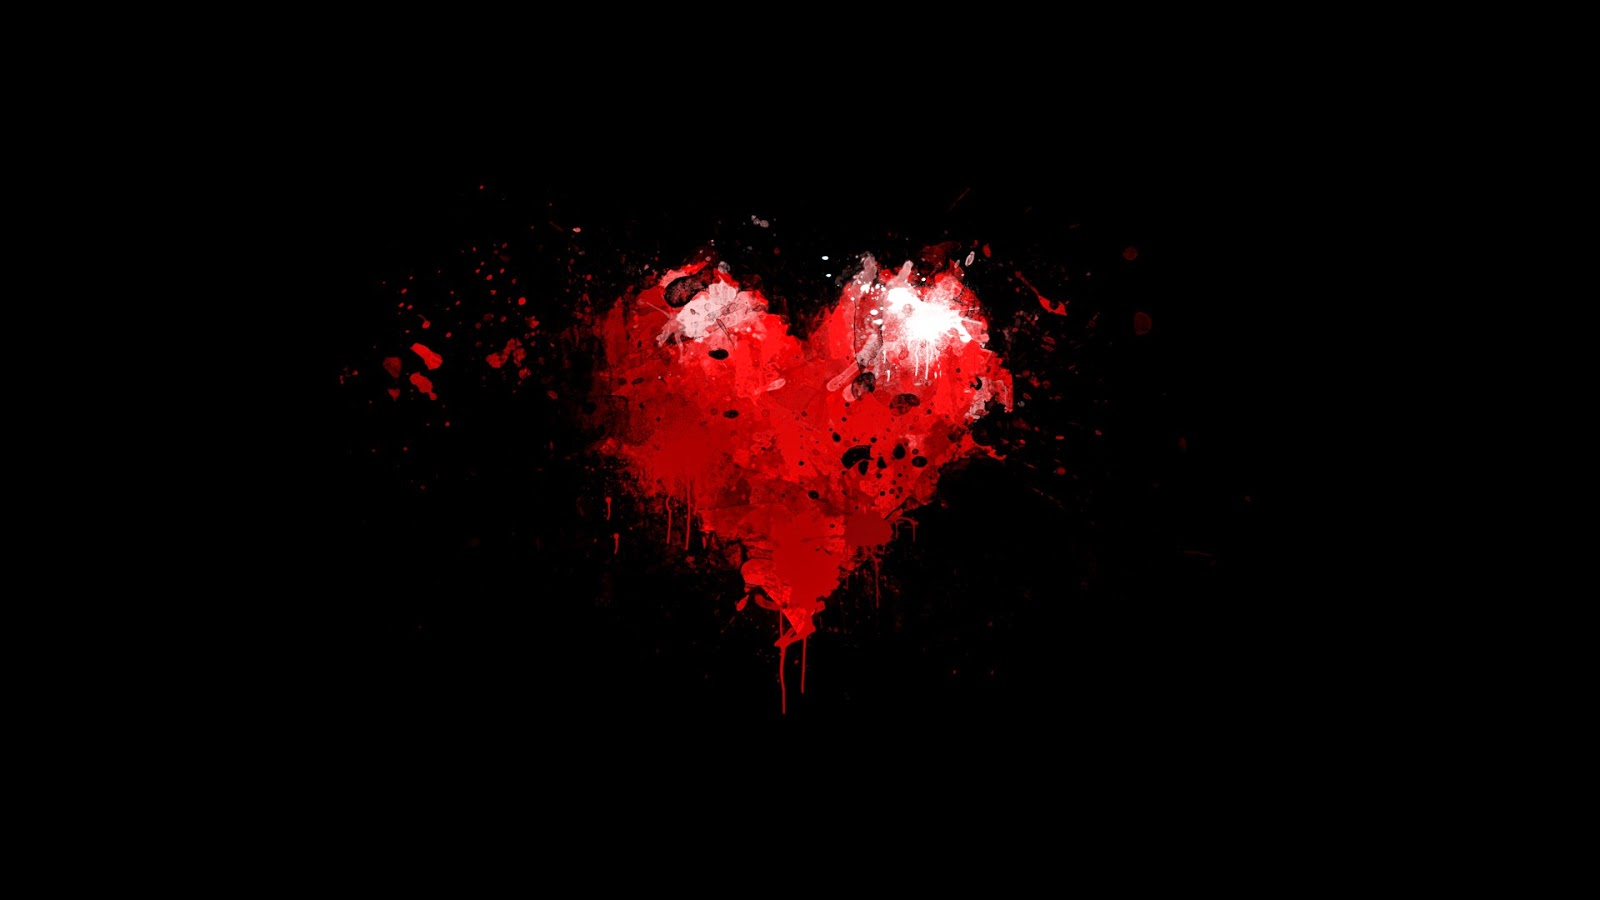 Love Wallpaper Blood : Romantic Love Heart Designs HD cover Wallpaper PIXHOME